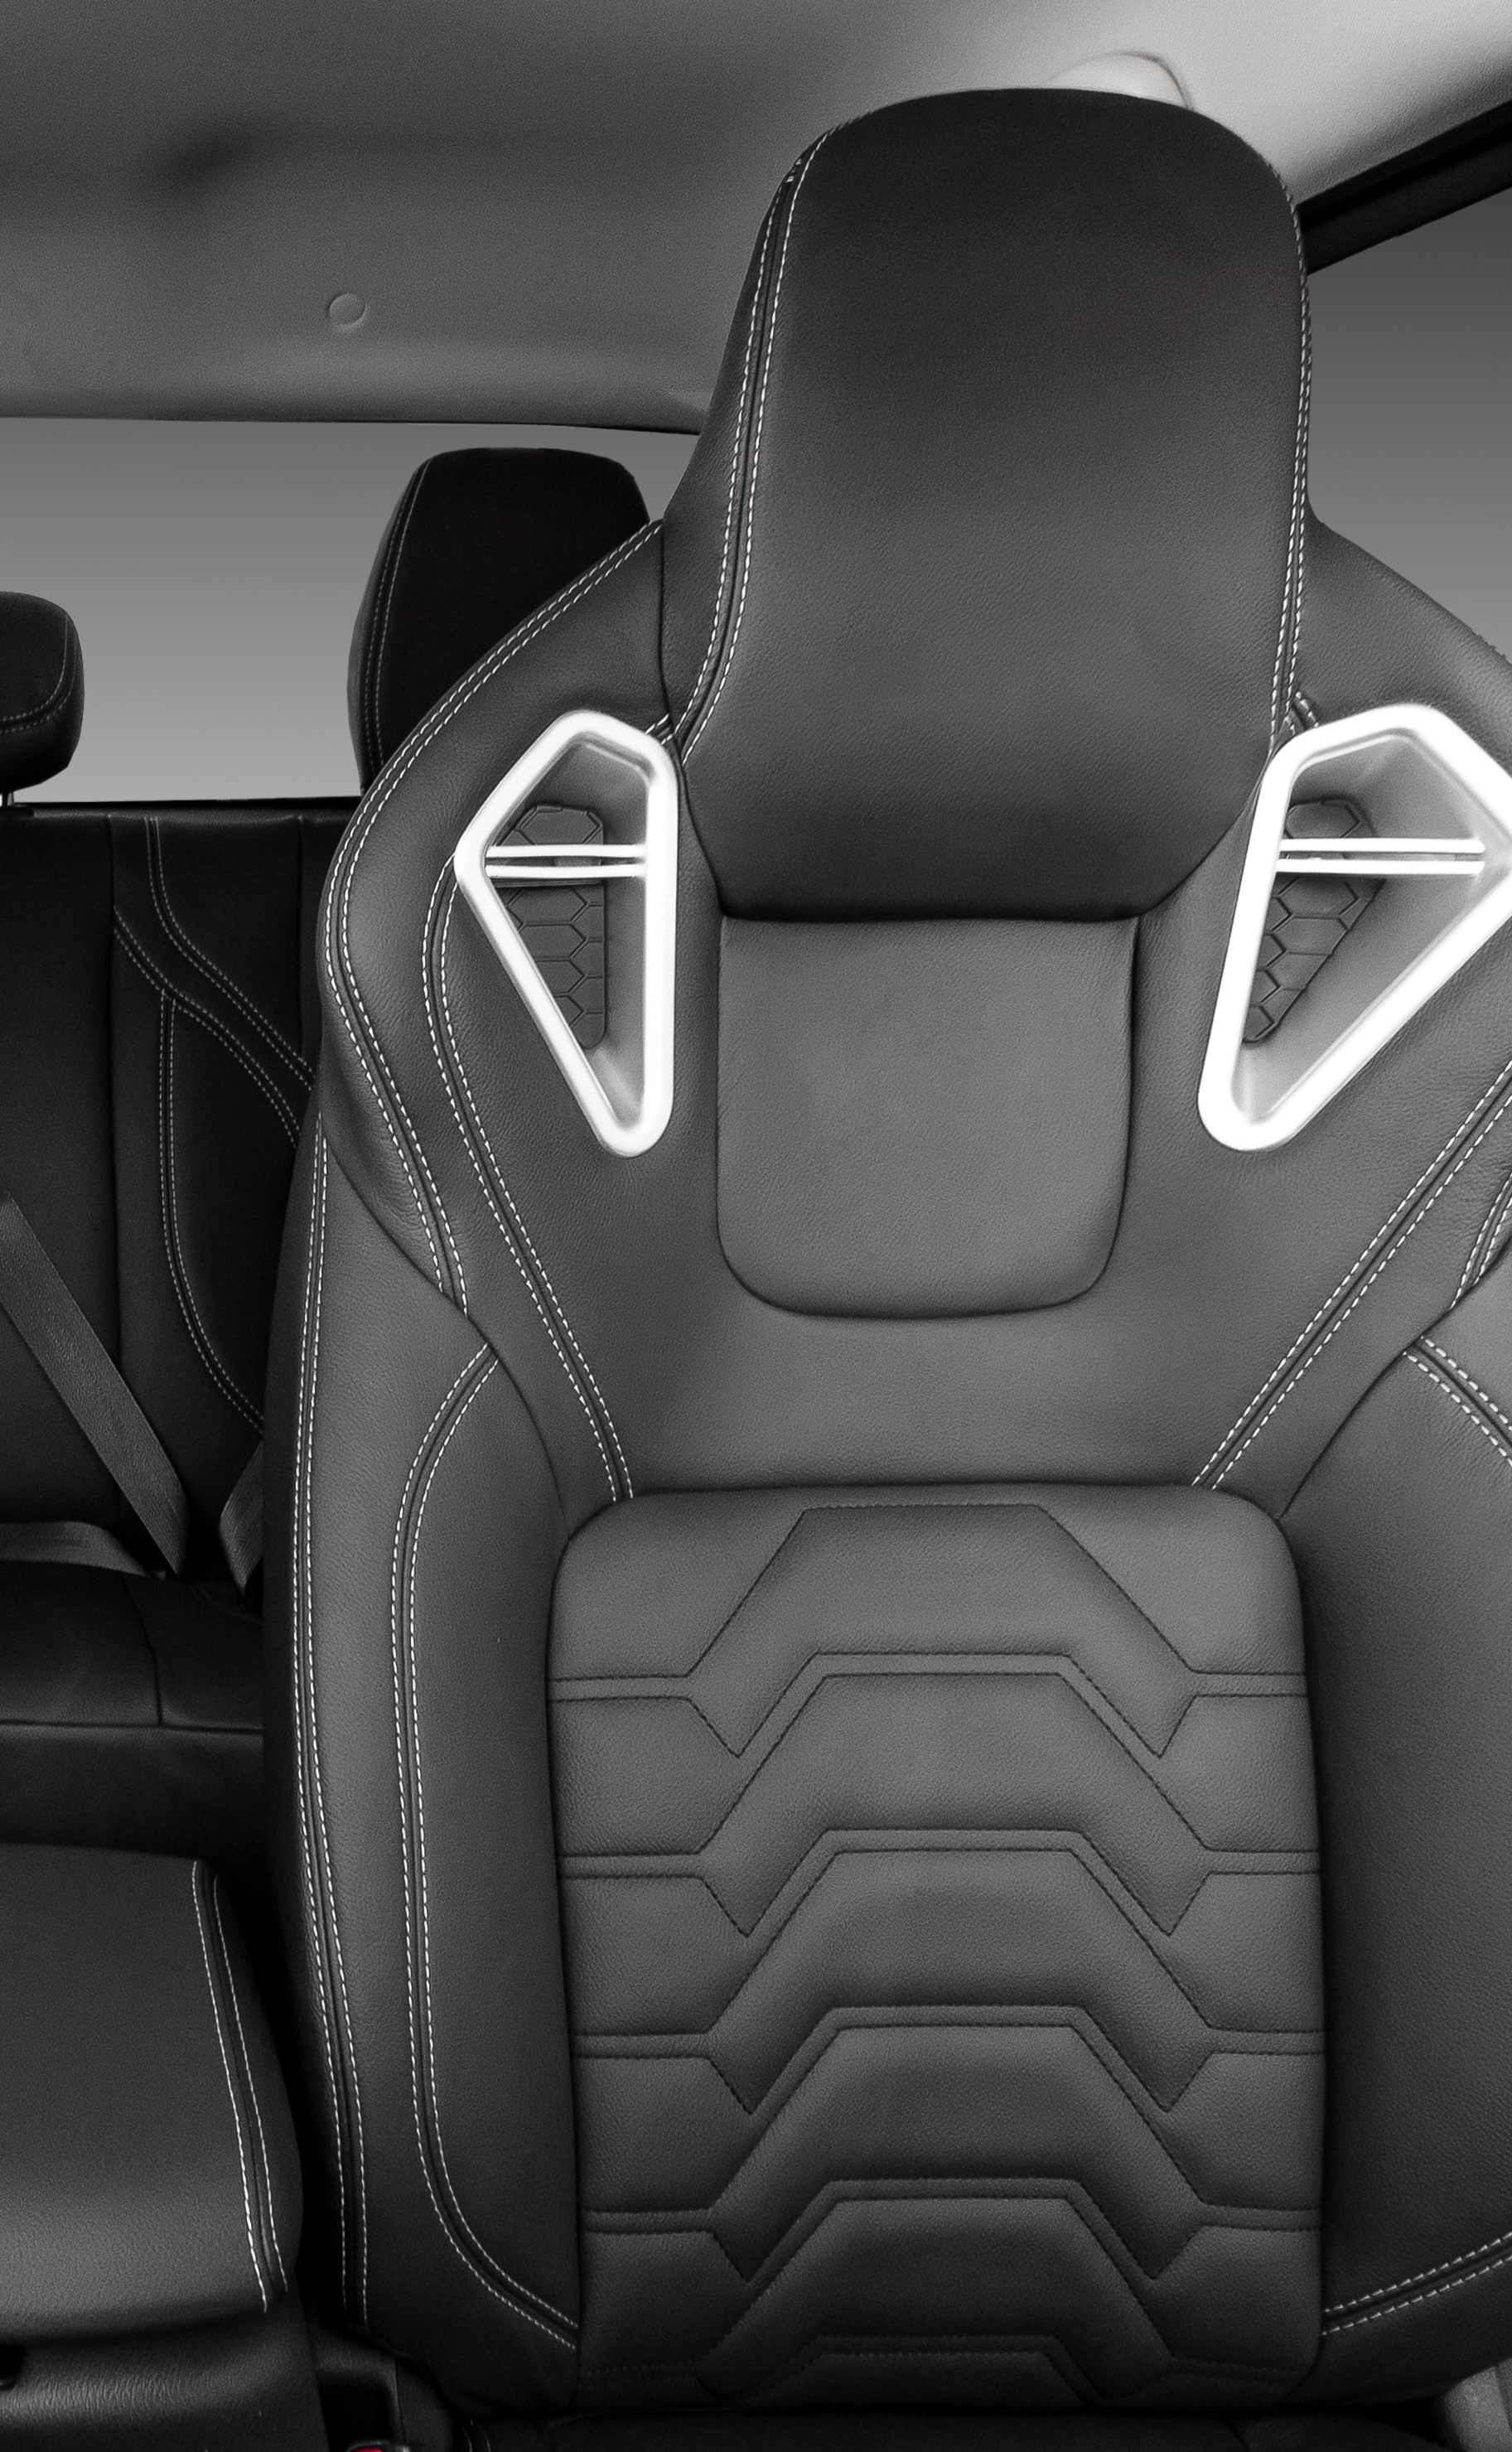 RVE-Mercedes-X-Class-XClass-Monza-Sport-Leather-Seat-Upgrade-Front-Back-4.jpg